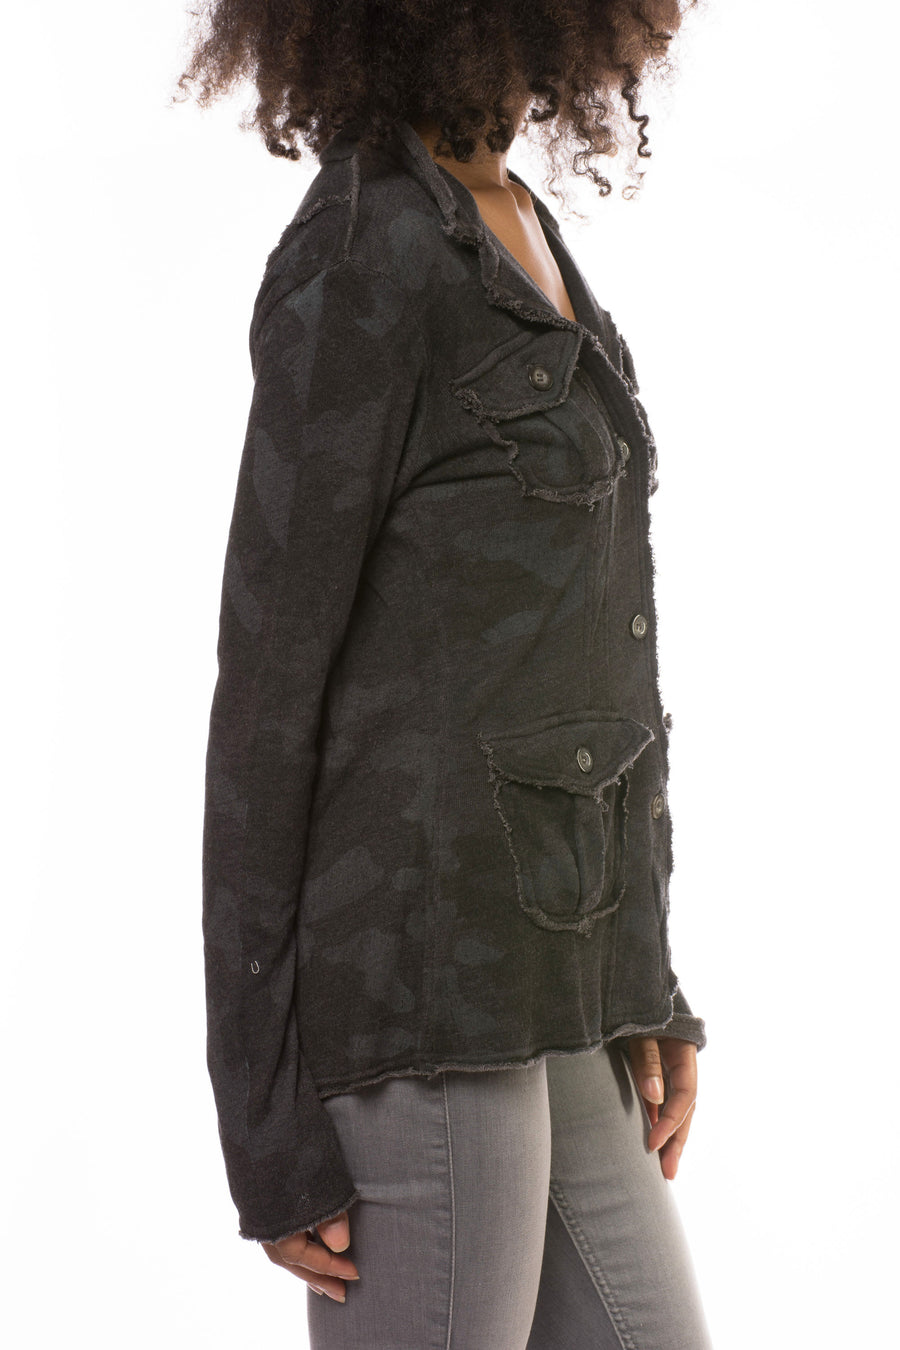 Camo Raw Edge Jacket (Style HEAT-04-CAMO, Granite Camo) by Hard Tail Forever